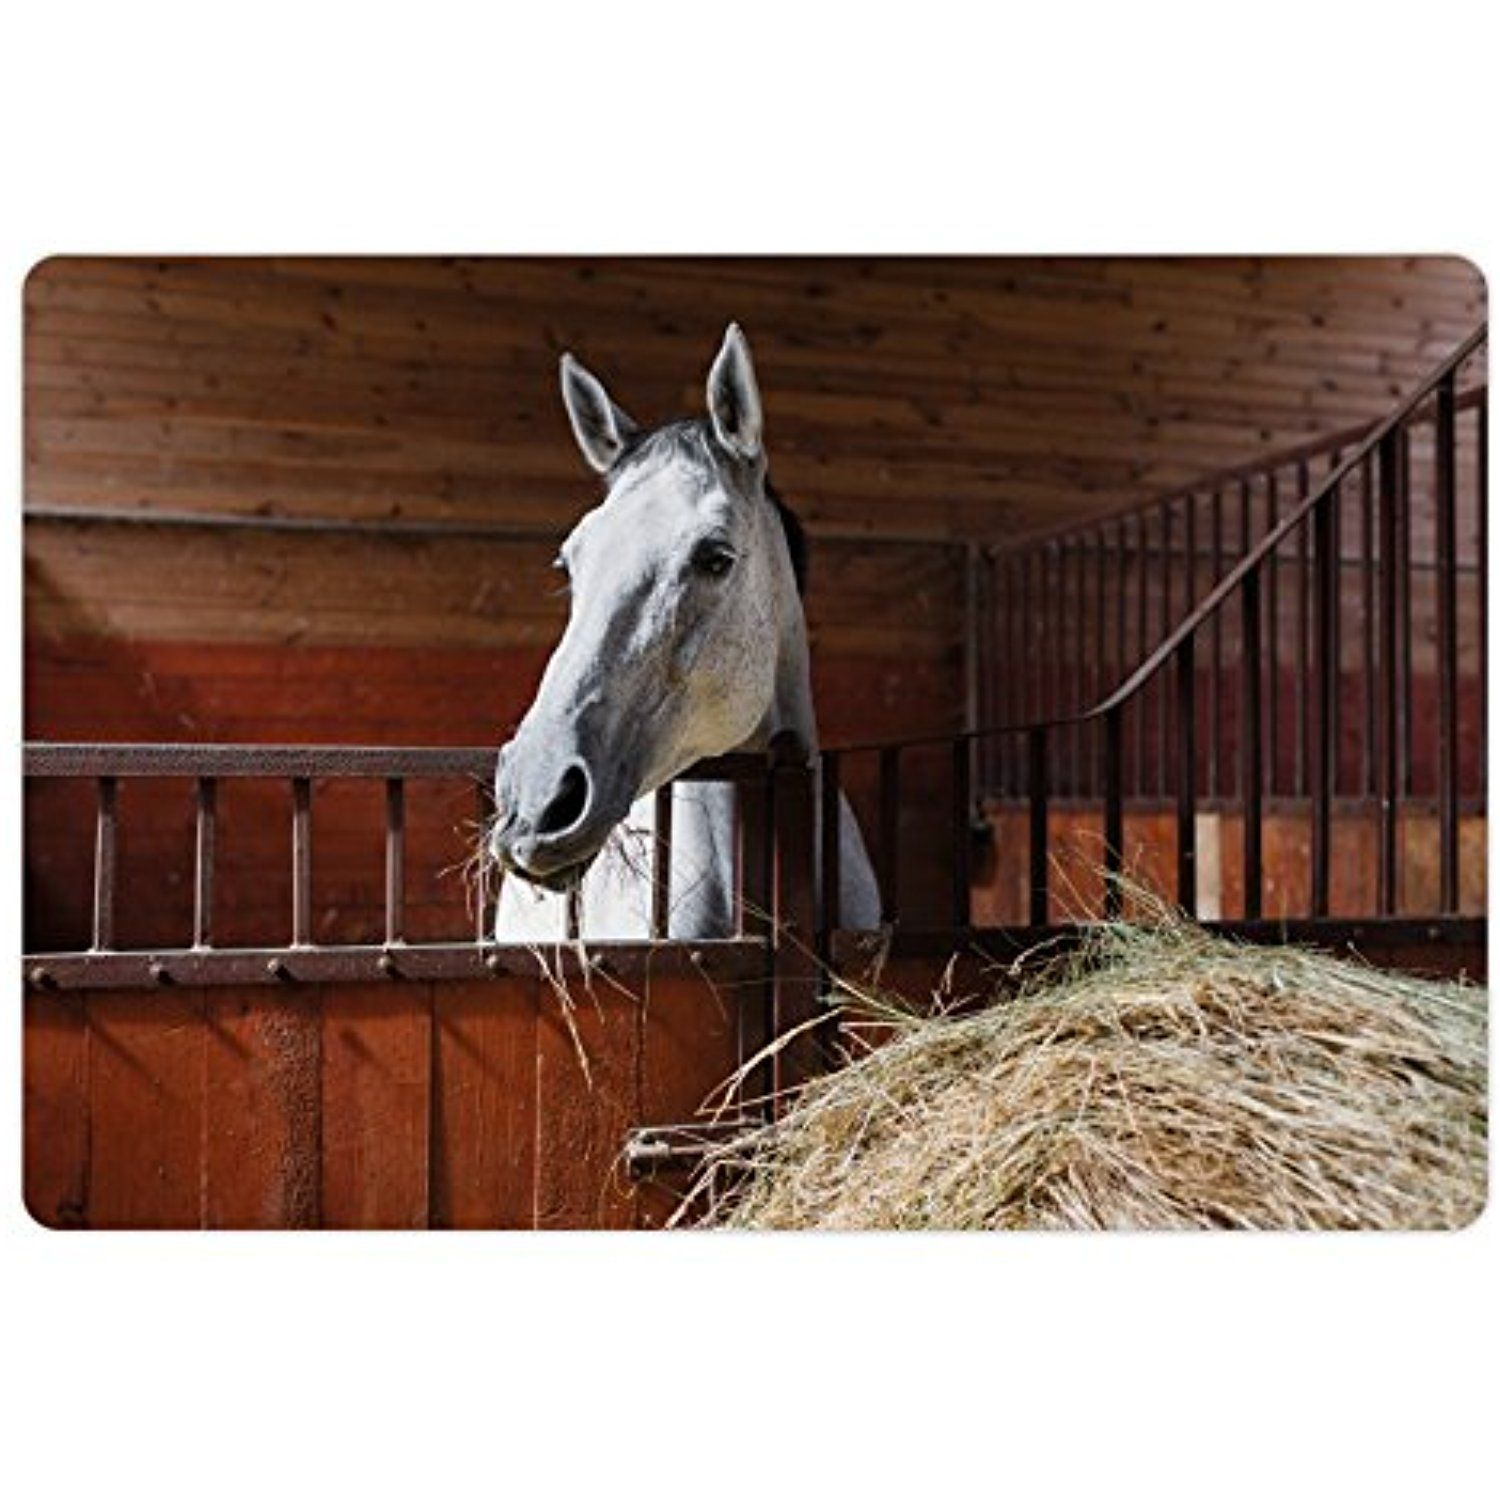 Horse Pet Mats for Food and Water by Lunarable, Young Mare